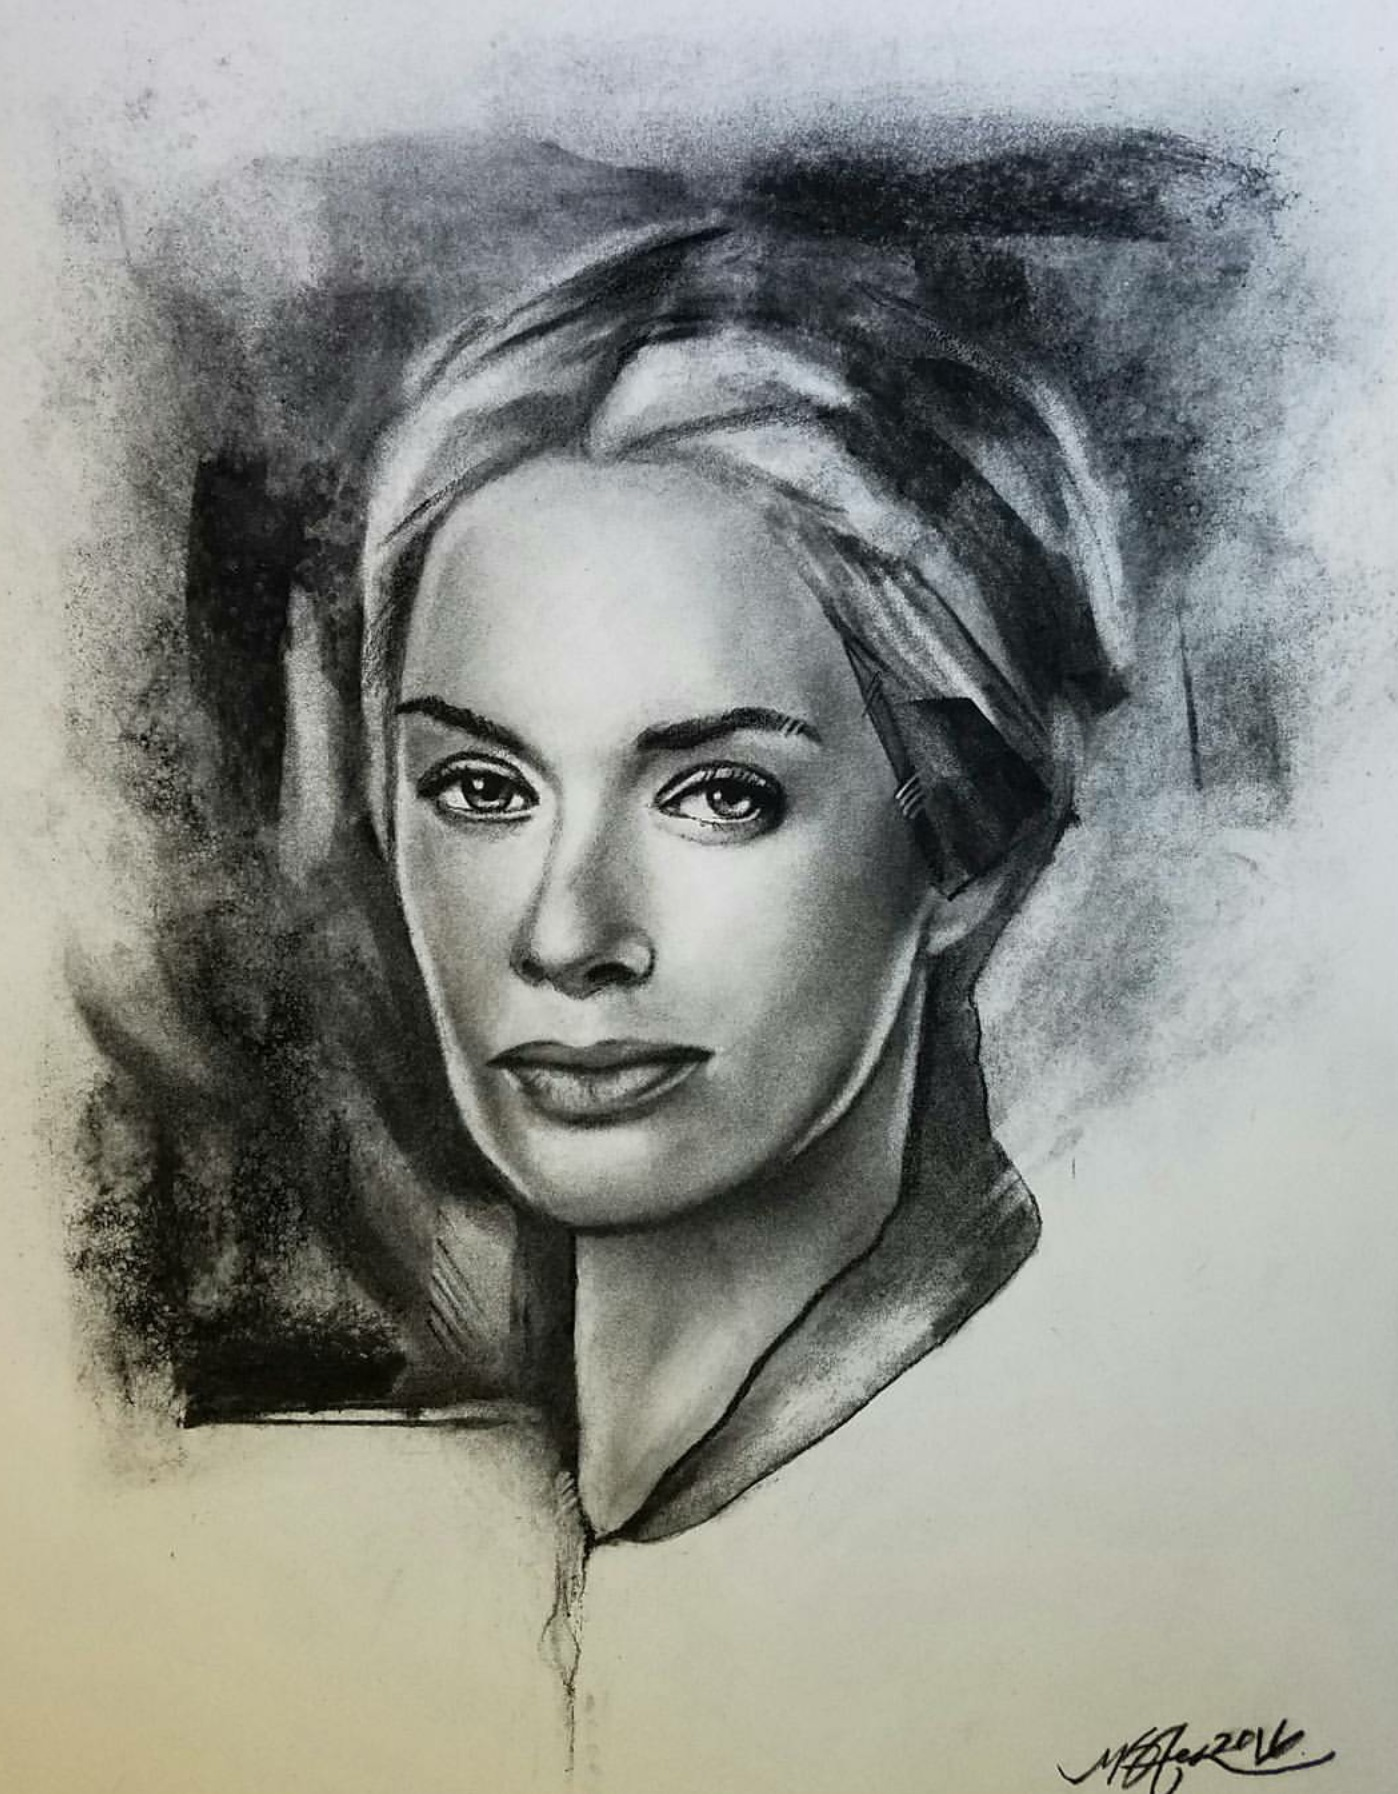 """Cersei Lannister"" 2016 - Charcoal on Bristol 11x14 in."